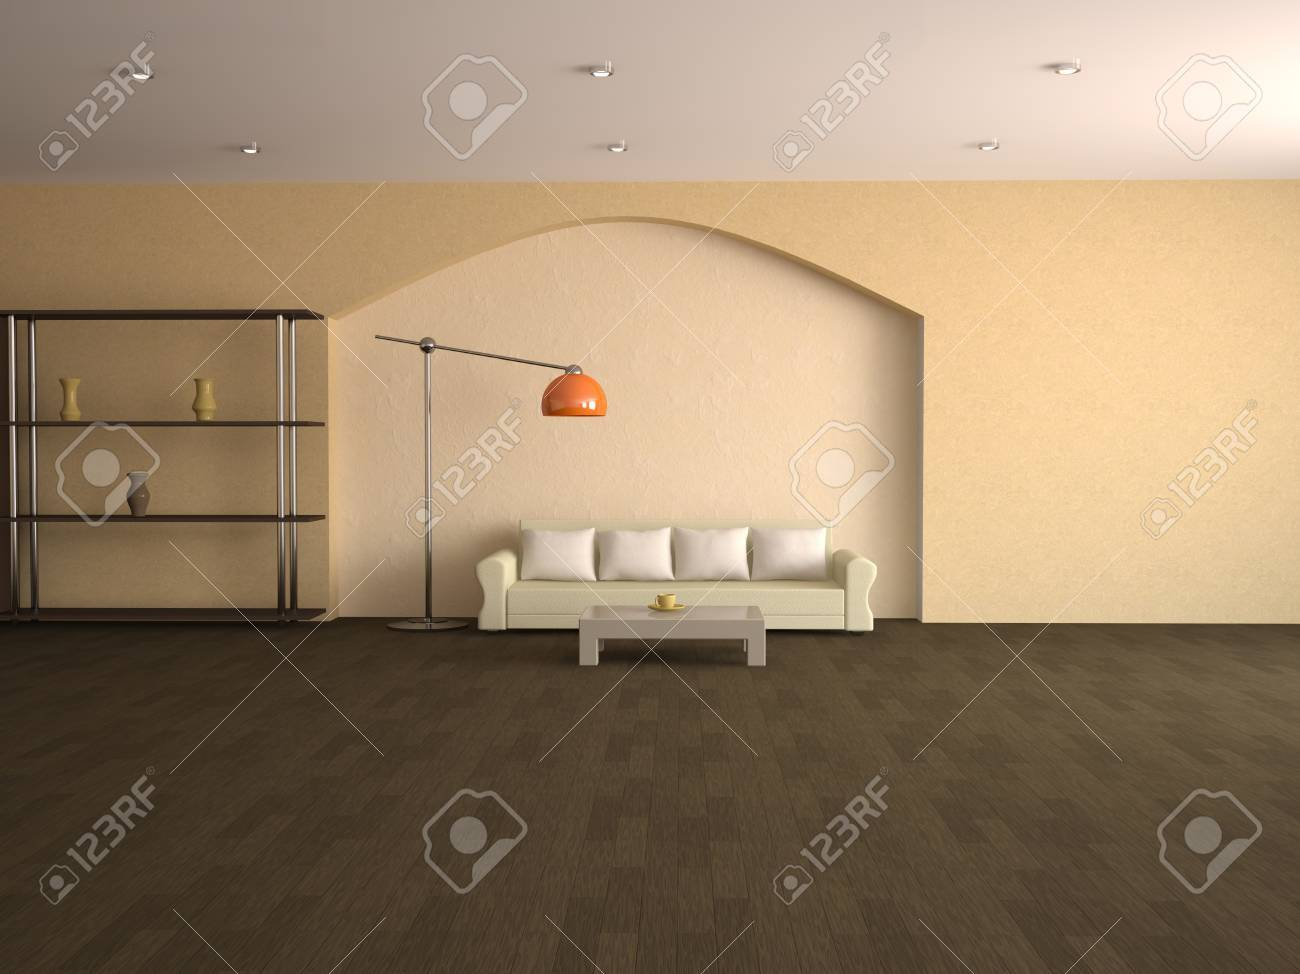 Interior of a room with a sofa and table Stock Photo - 12580224